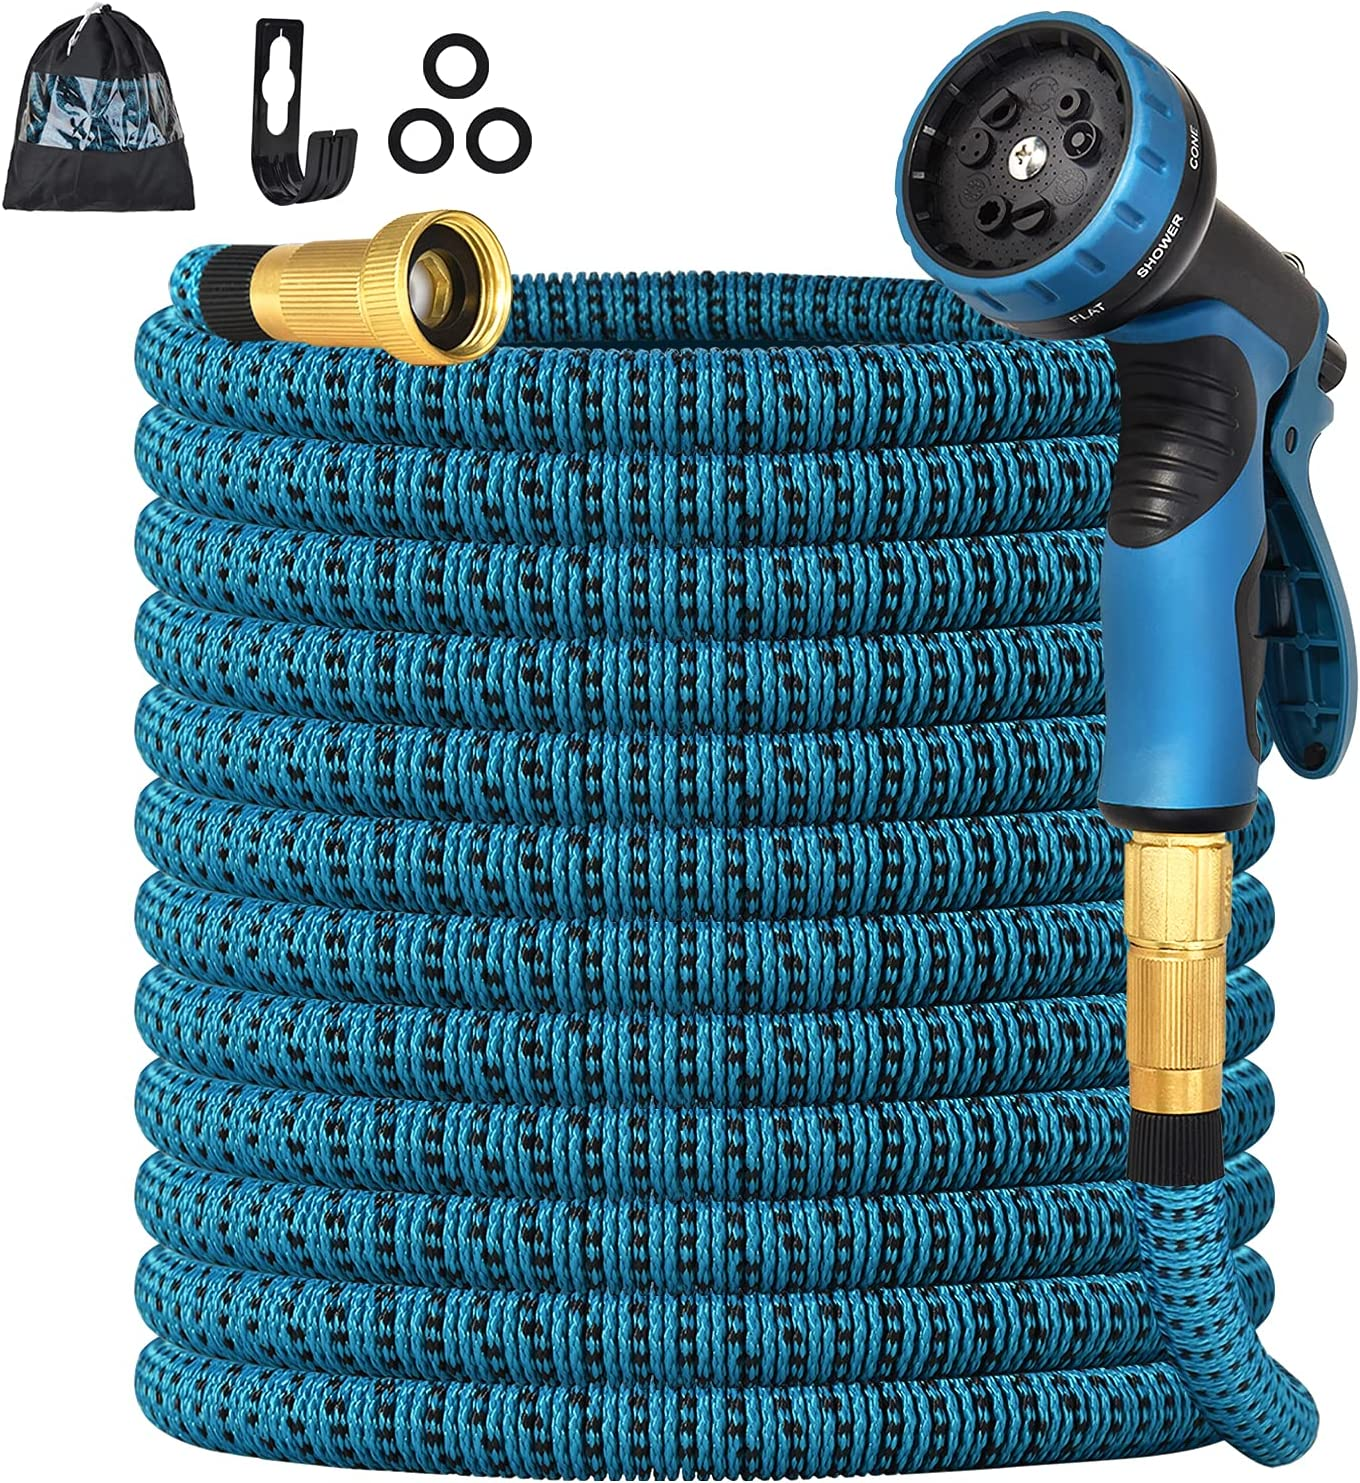 Knauue Expandable Garden Hose 25 FT, Flexible Lightweight Water Hose with 9 Way Spray Nozzle, Durable 3-Layer Latex Core,3/4 Solid Brass Fittings, Portable, and Kink Free Water Hose